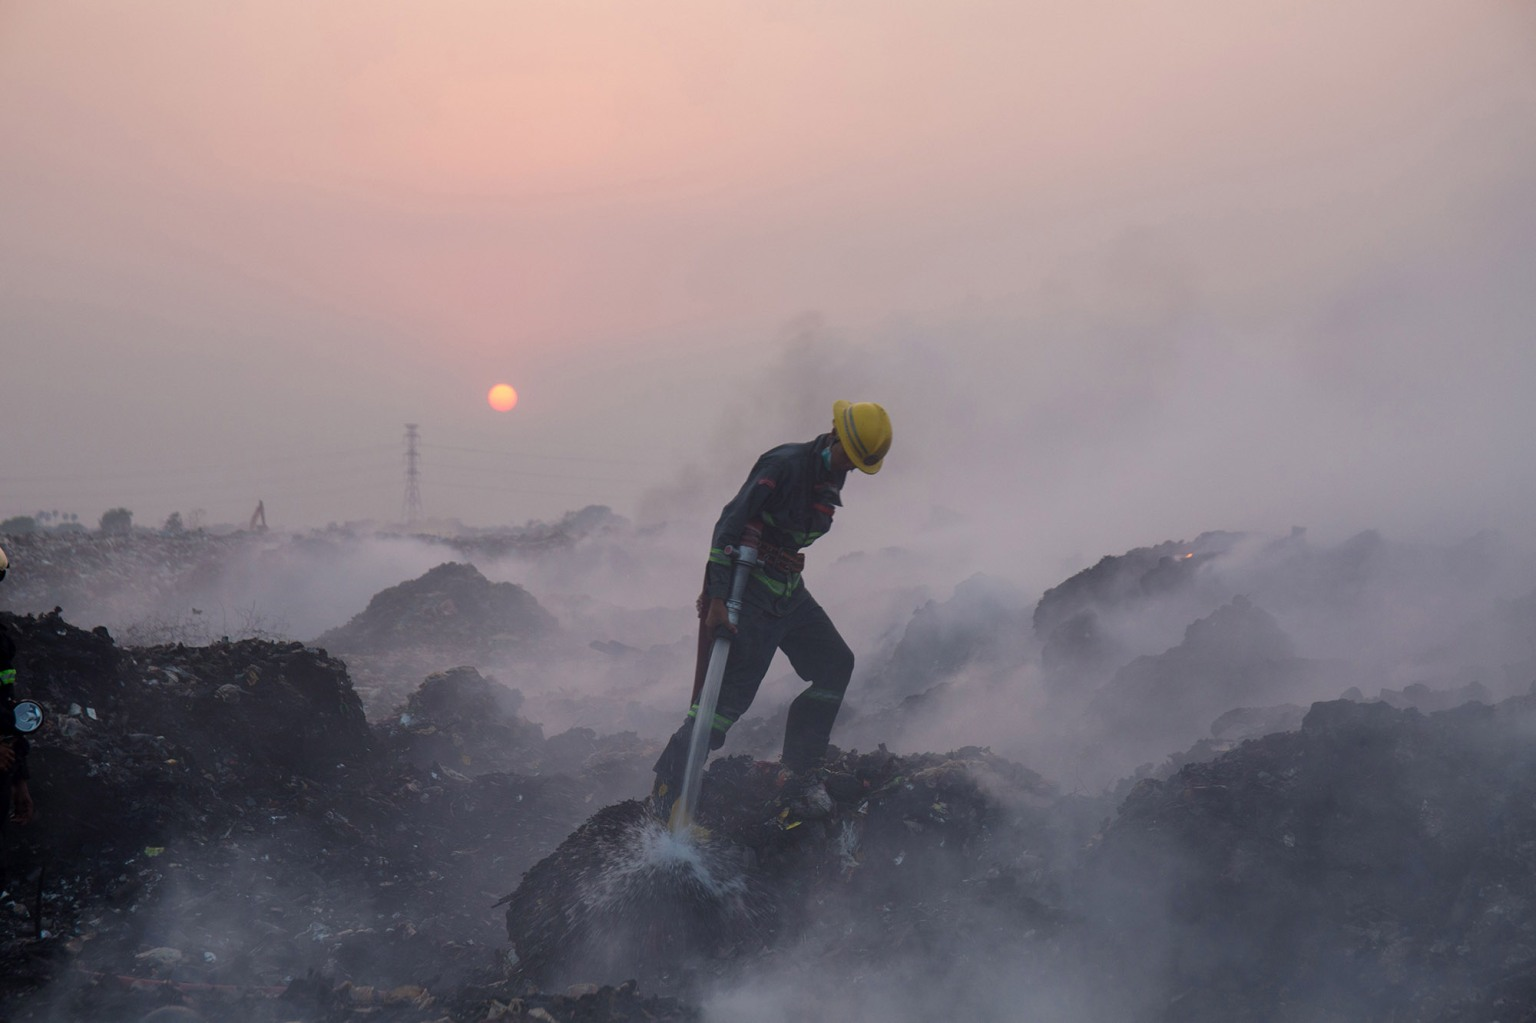 A fireman battles a fire at a massive garbage dump in Yangon, Myanmar, on April 23. The fire raged for hours, blanketing a large part of the city with foul-smelling smoke. SAI AUNG MAIN/AFP/Getty Images